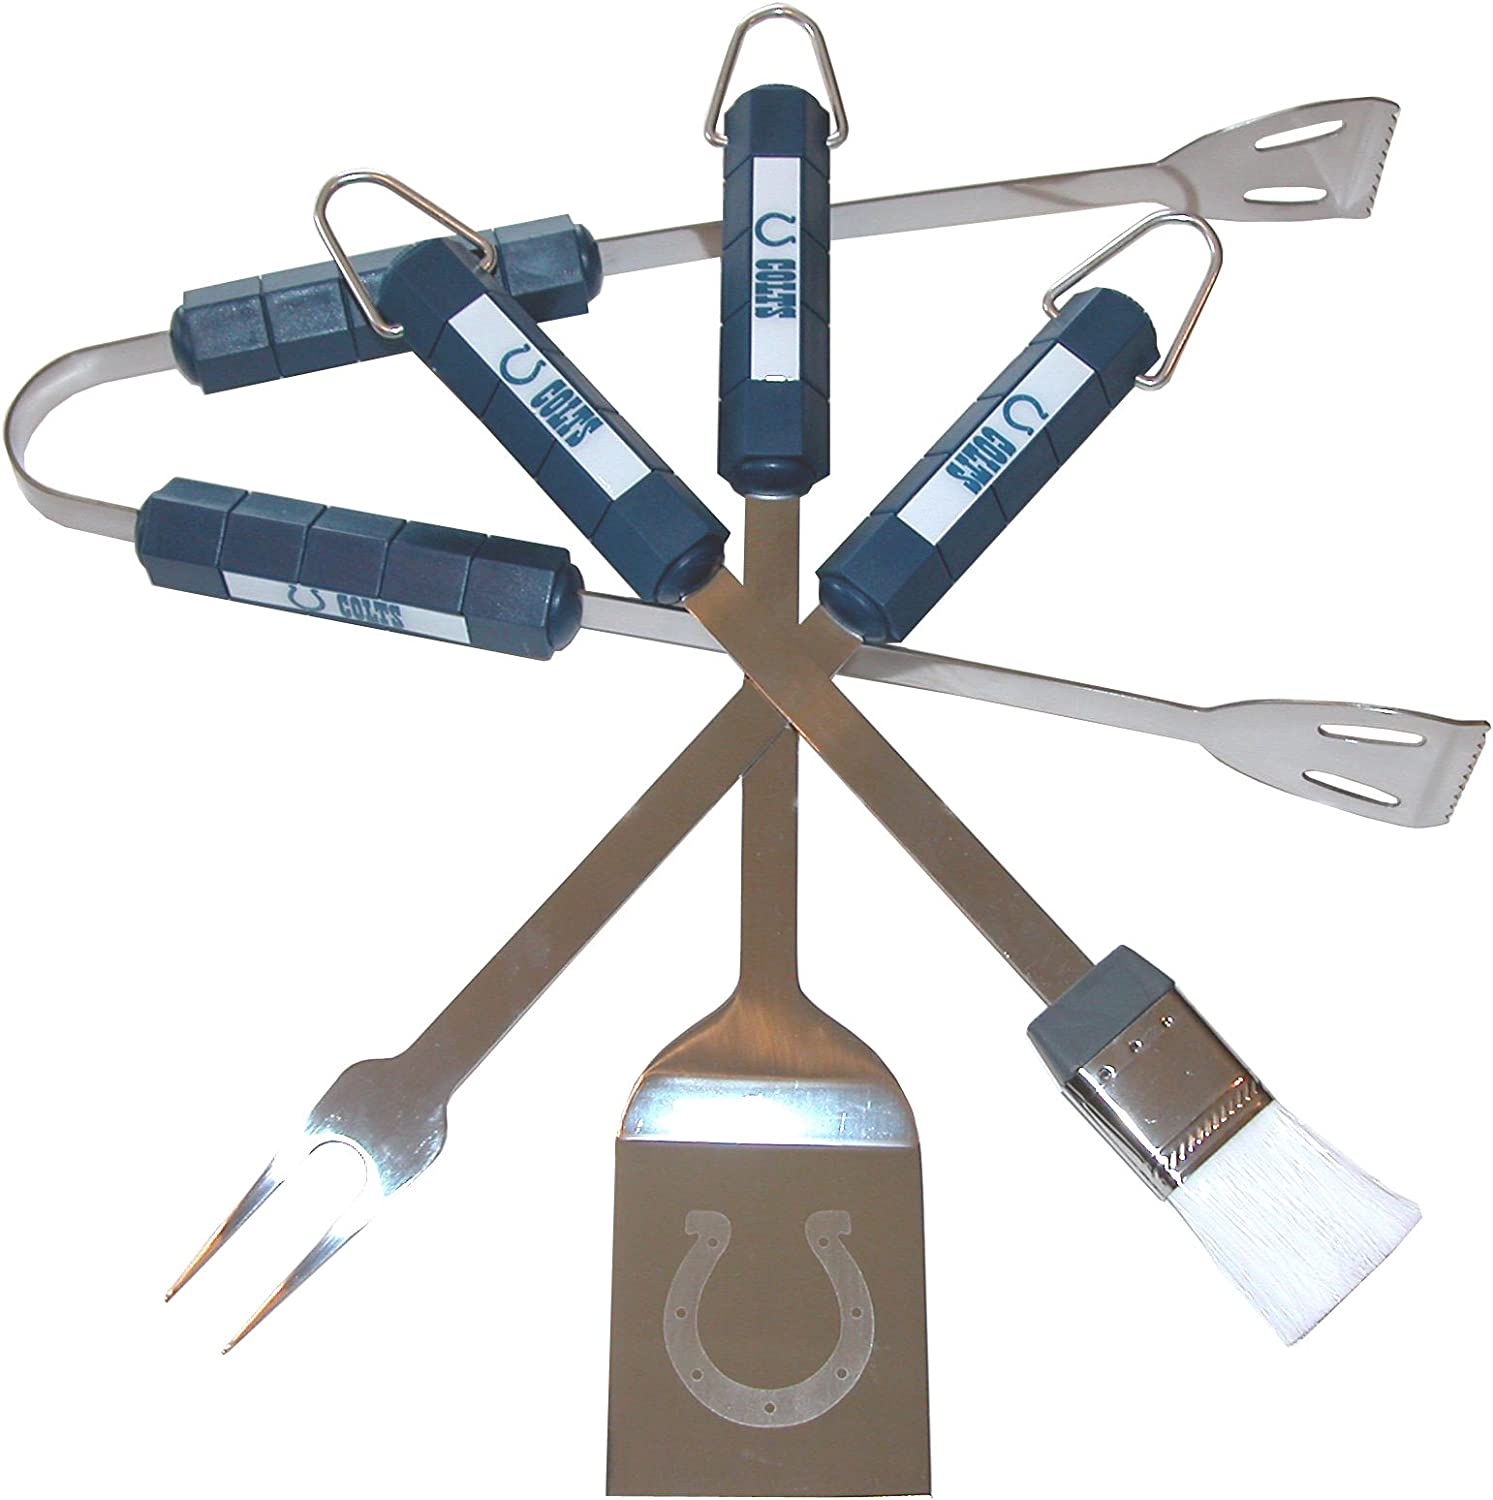 NFL Indianapolis Colts 4-Piece Barbecue Set